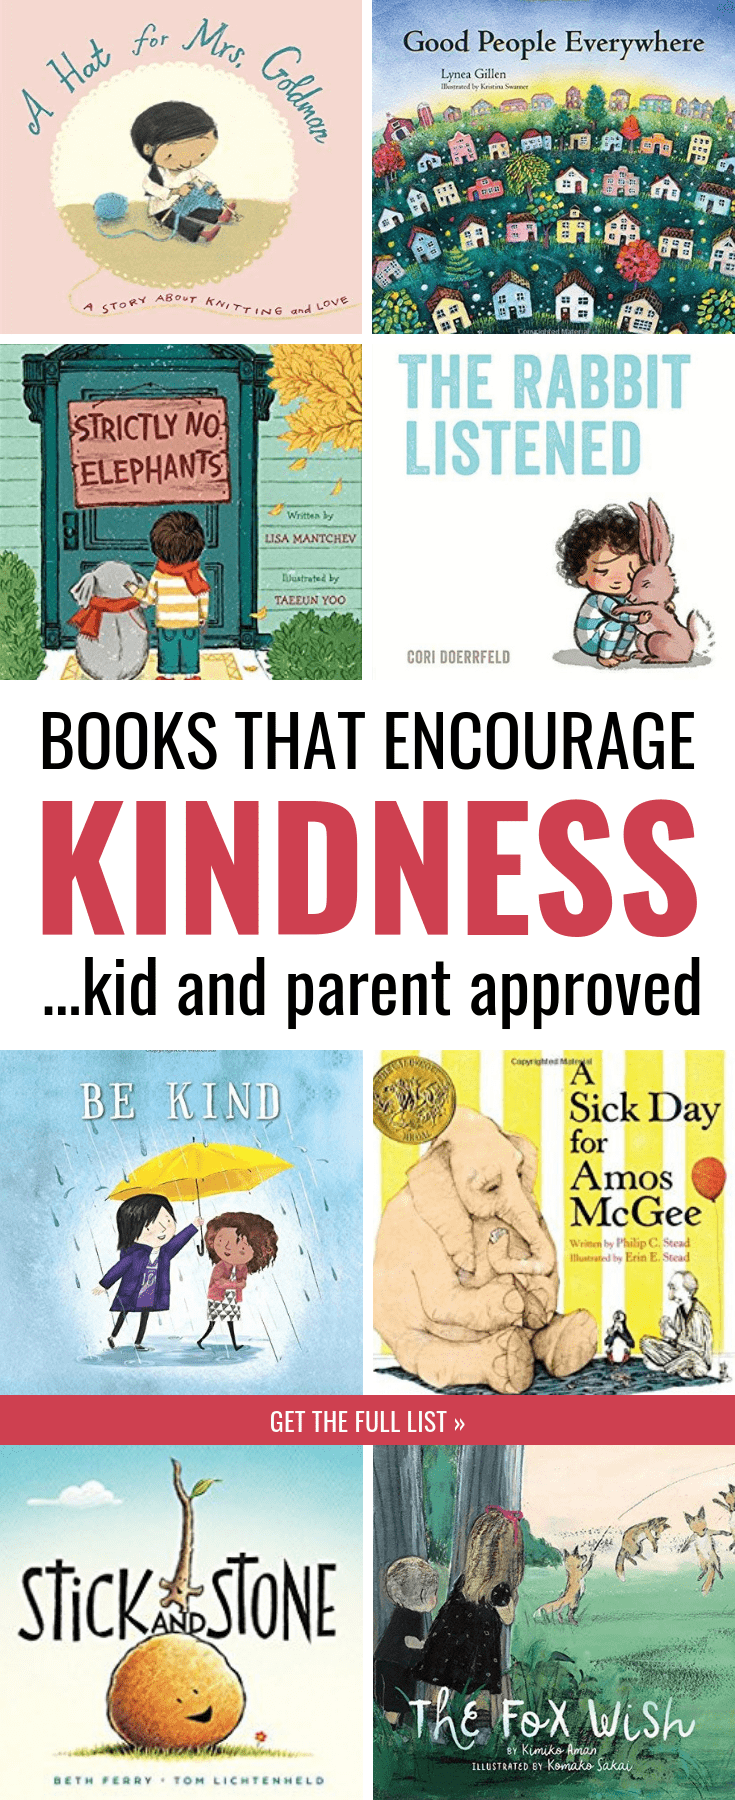 Share these children's books with your kids to encourage kindness toward others. Research shows this is one of the BEST ways you can raise kind kids--by encouraging kids to consider the perspective and struggles of others. This list of picture books is perfect for toddlers, preschool, kindergarten, and older kids too. #kidlit #kidsbooks #parenting #kids